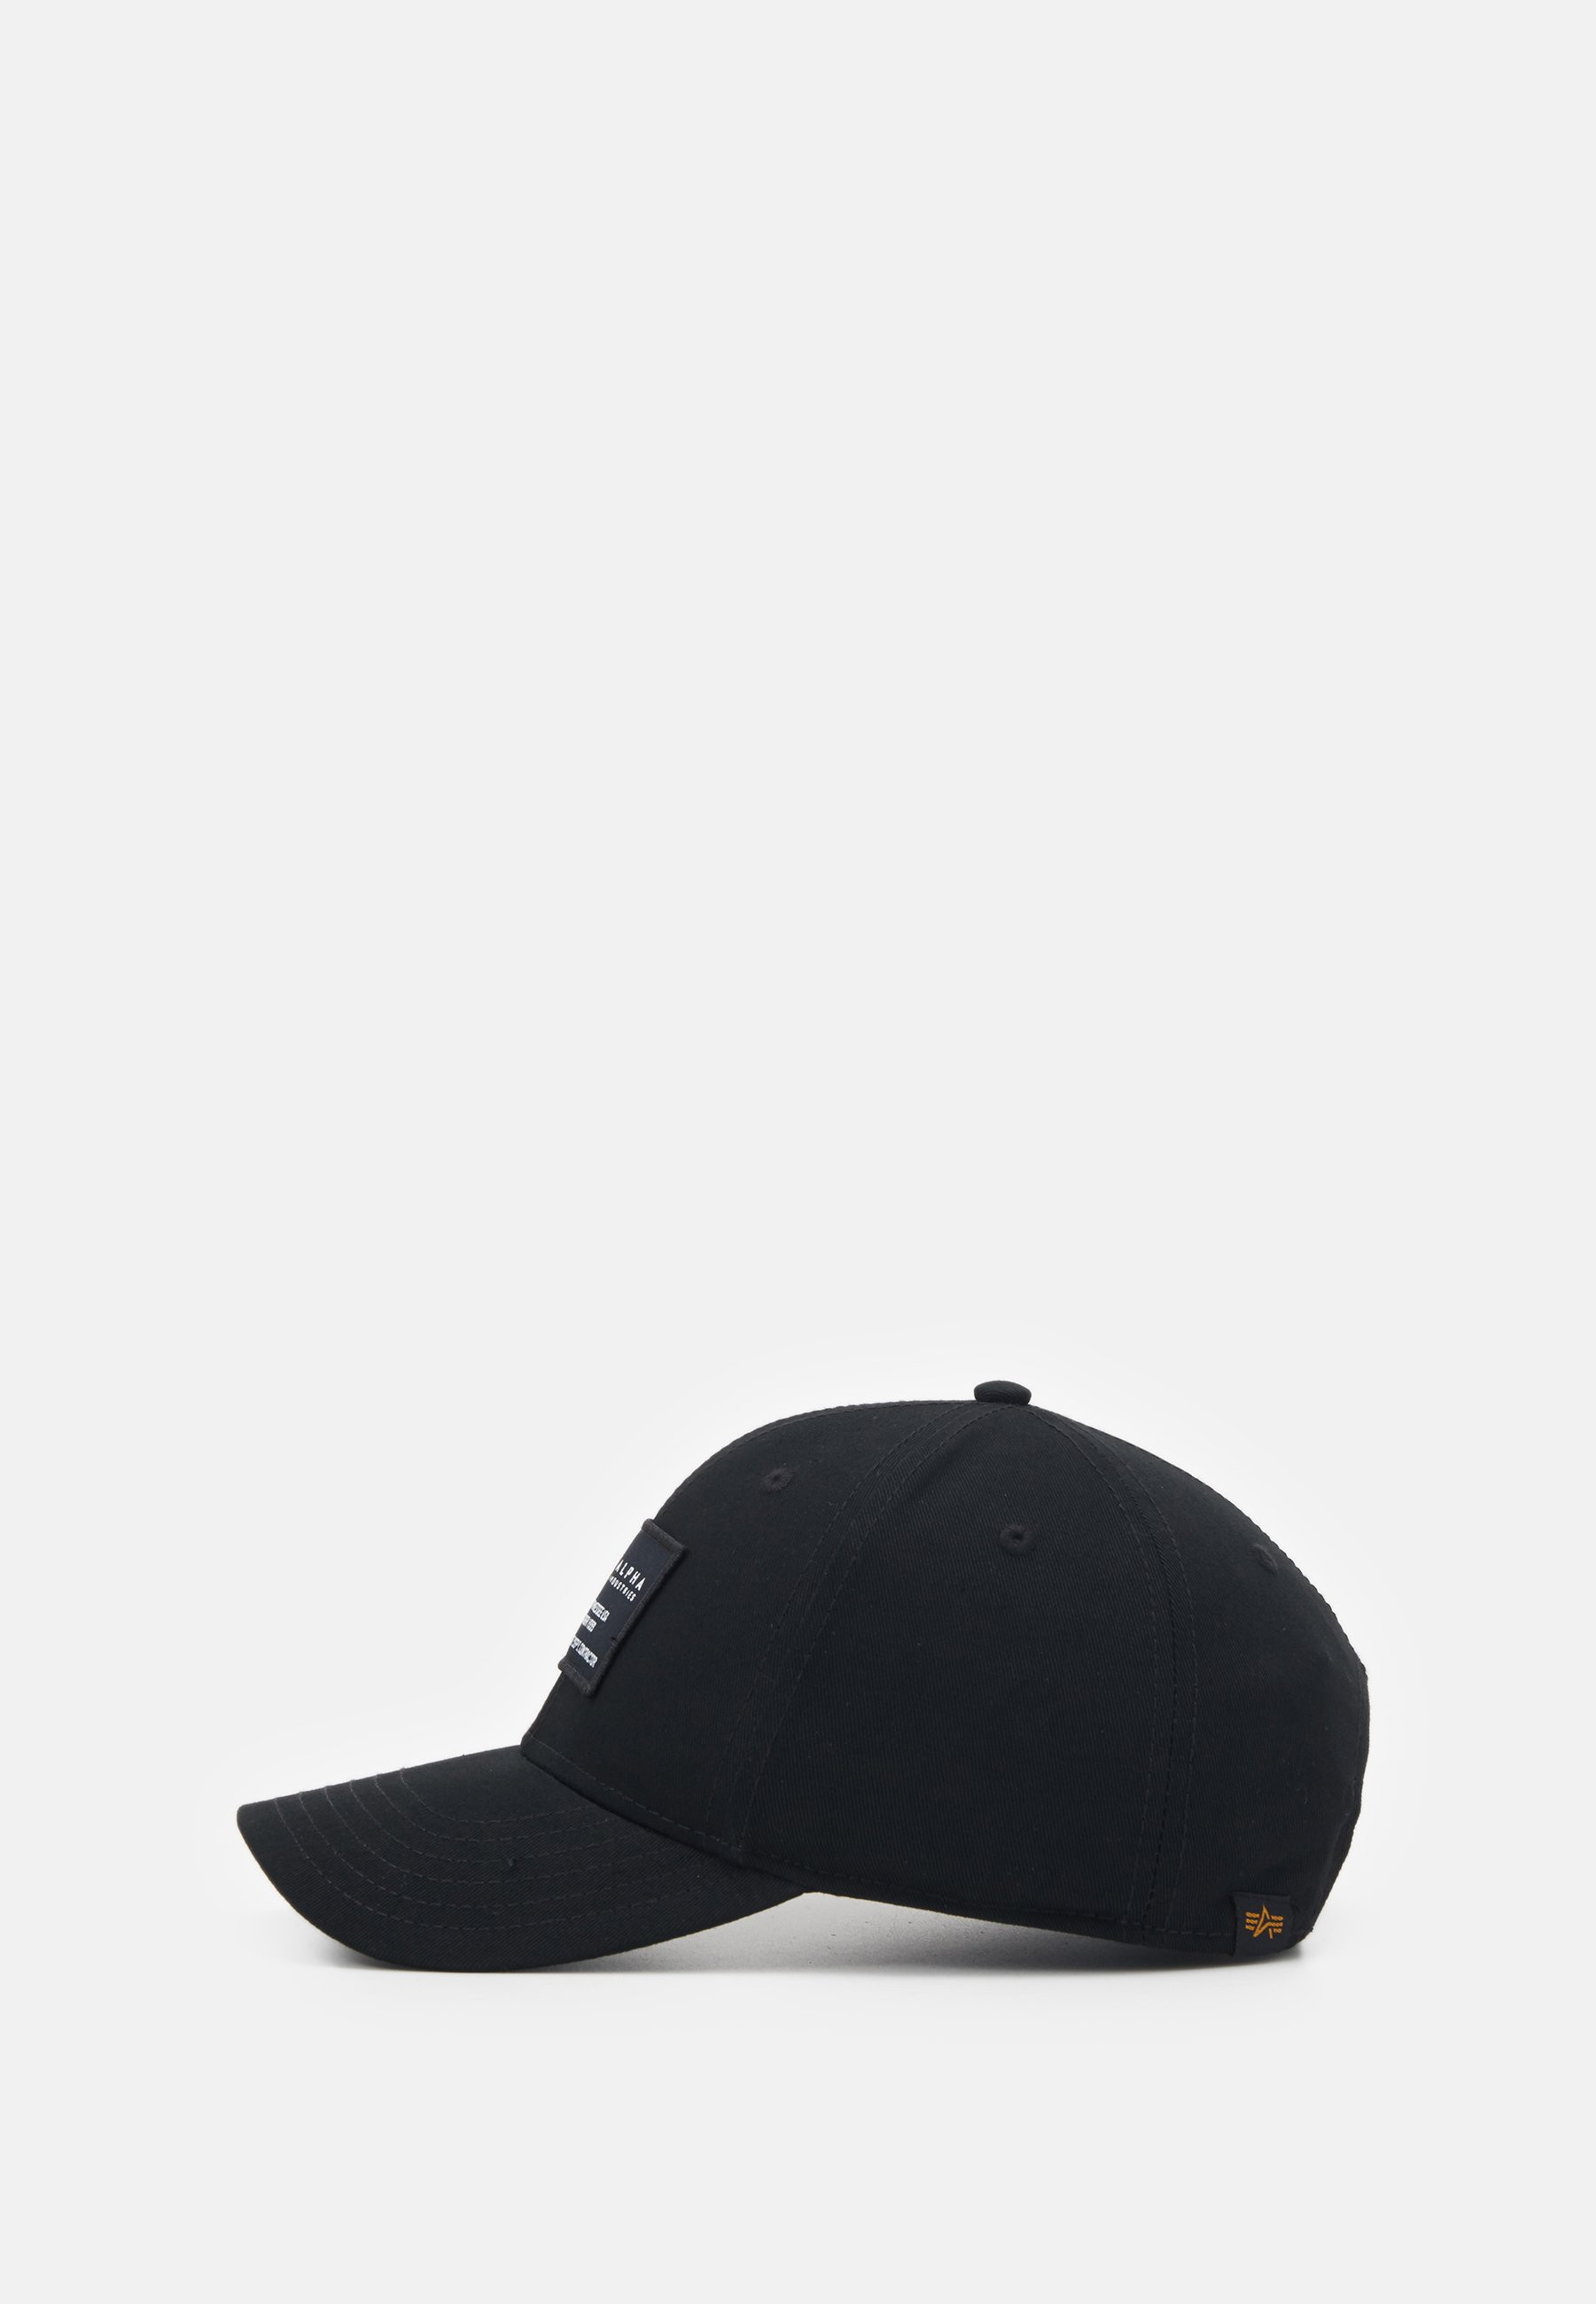 Alpha Industries Crew Cap - Black/schwarz